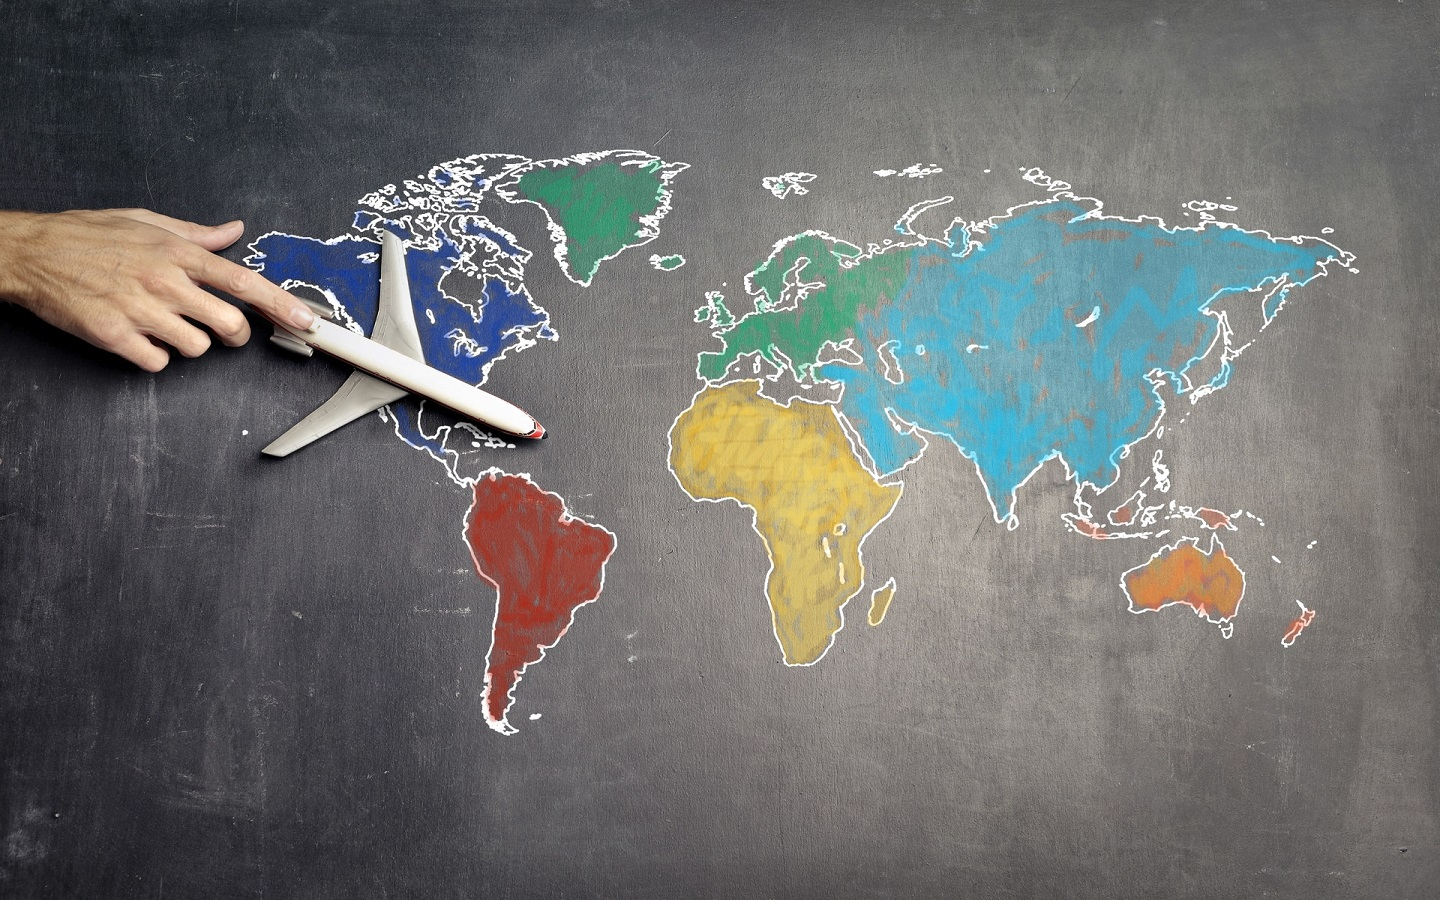 plane over world map